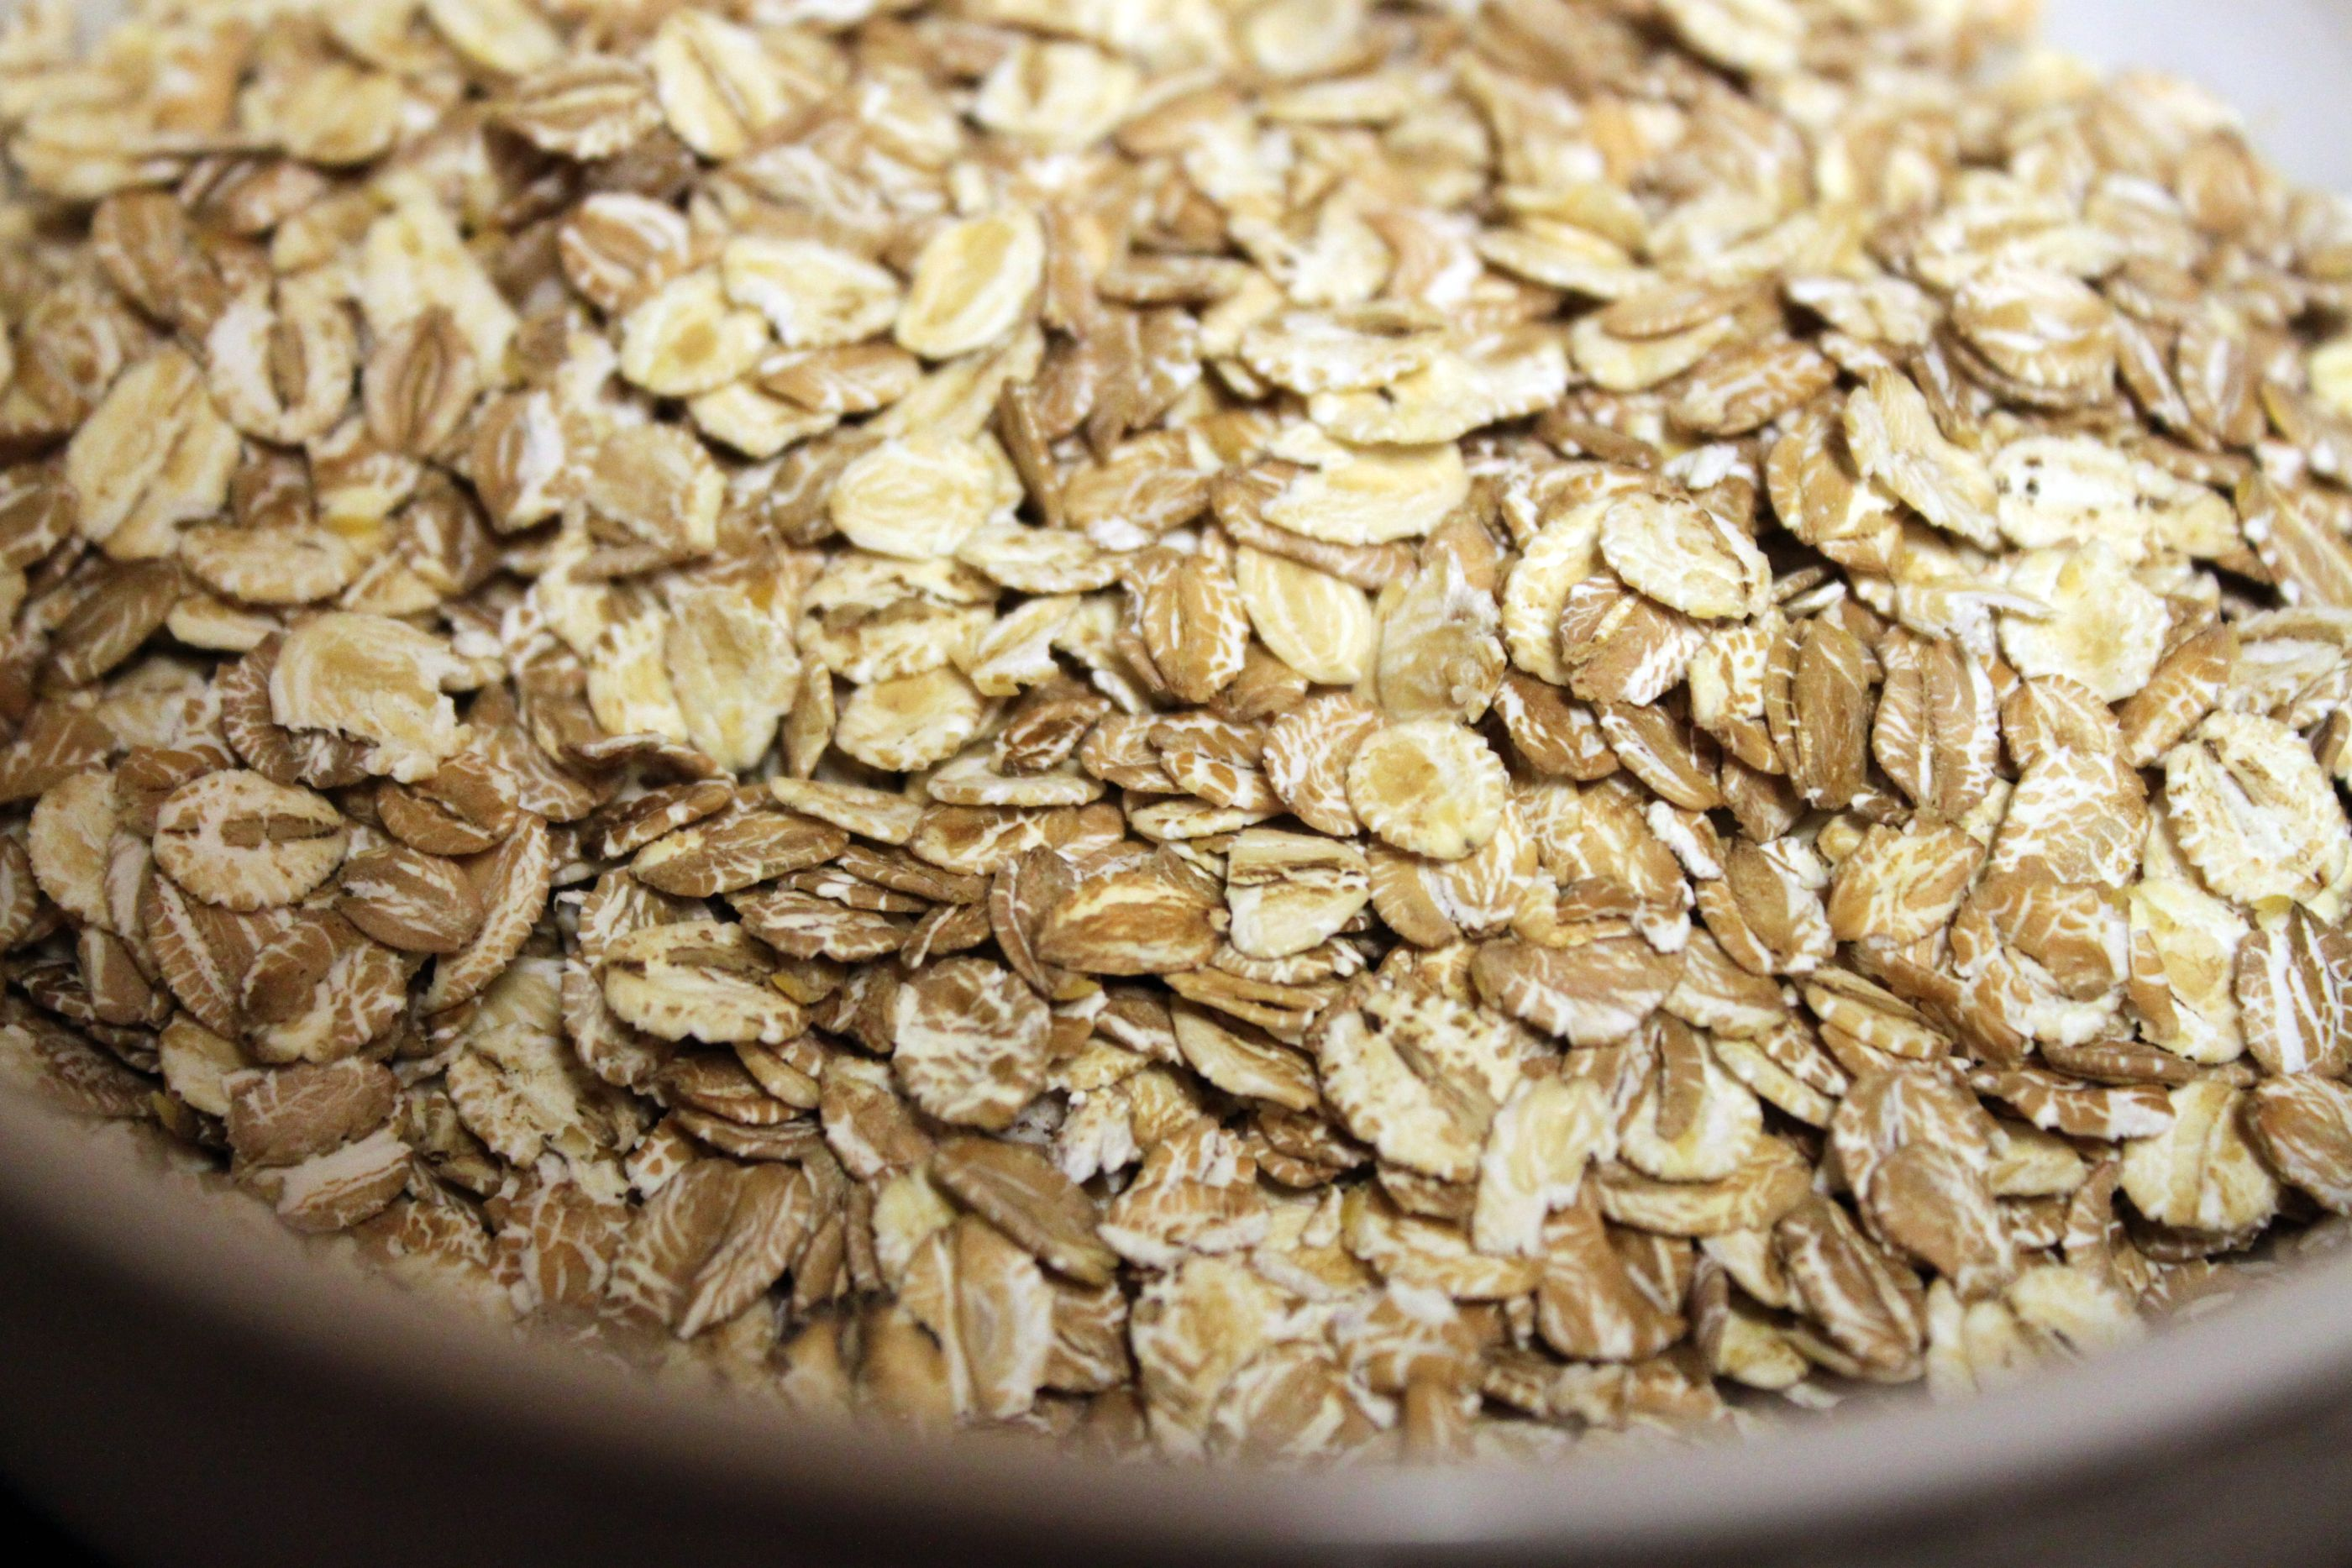 Oats Flakes in a Bowl